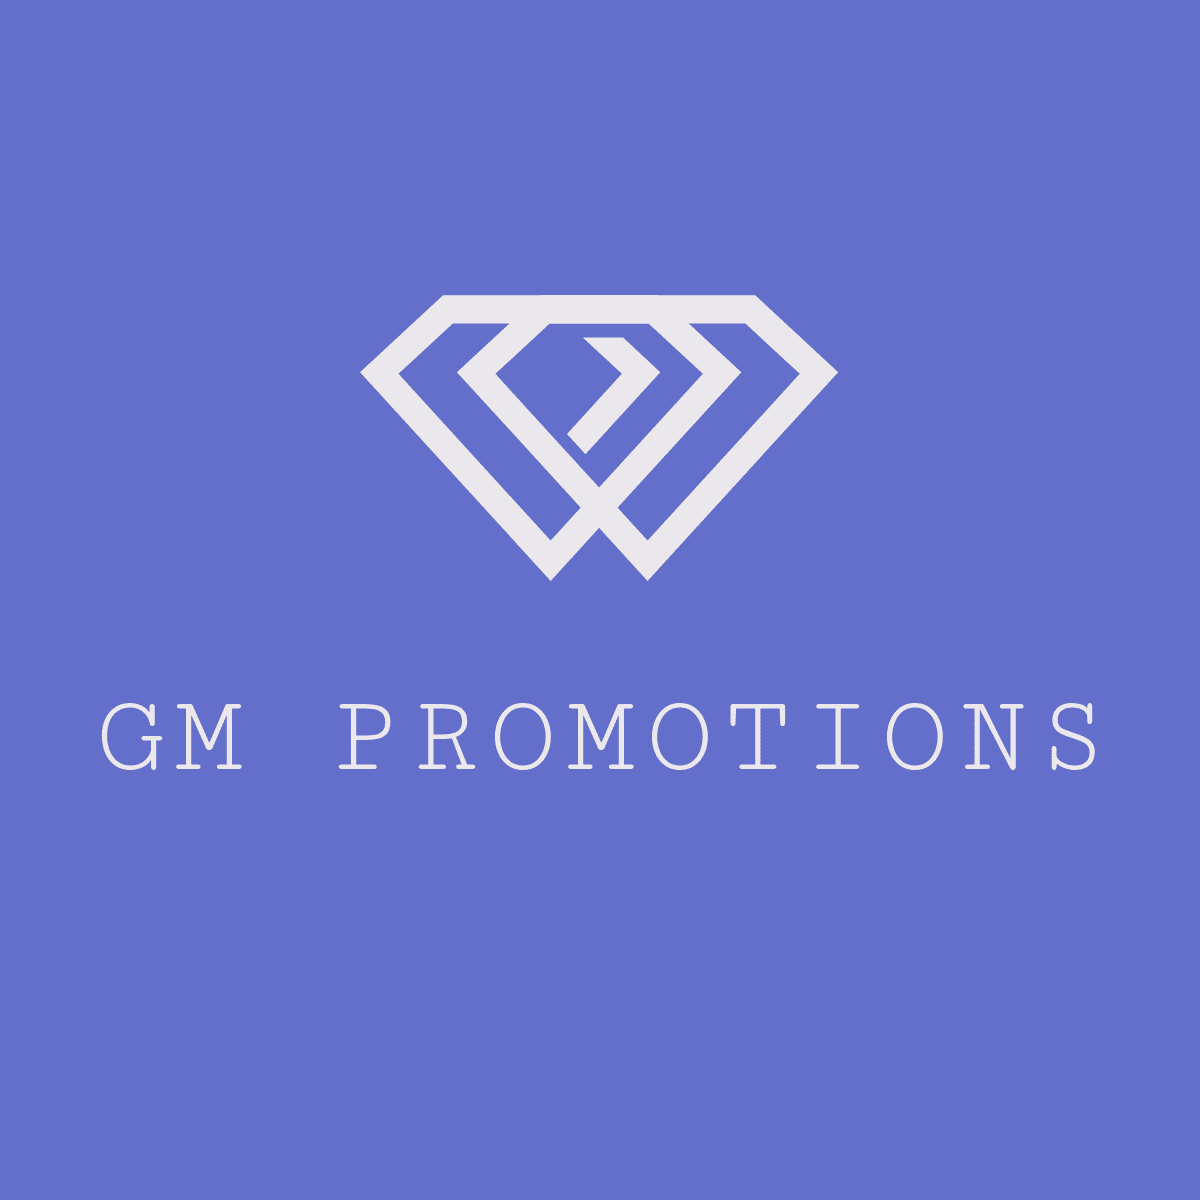 GM Promotions image